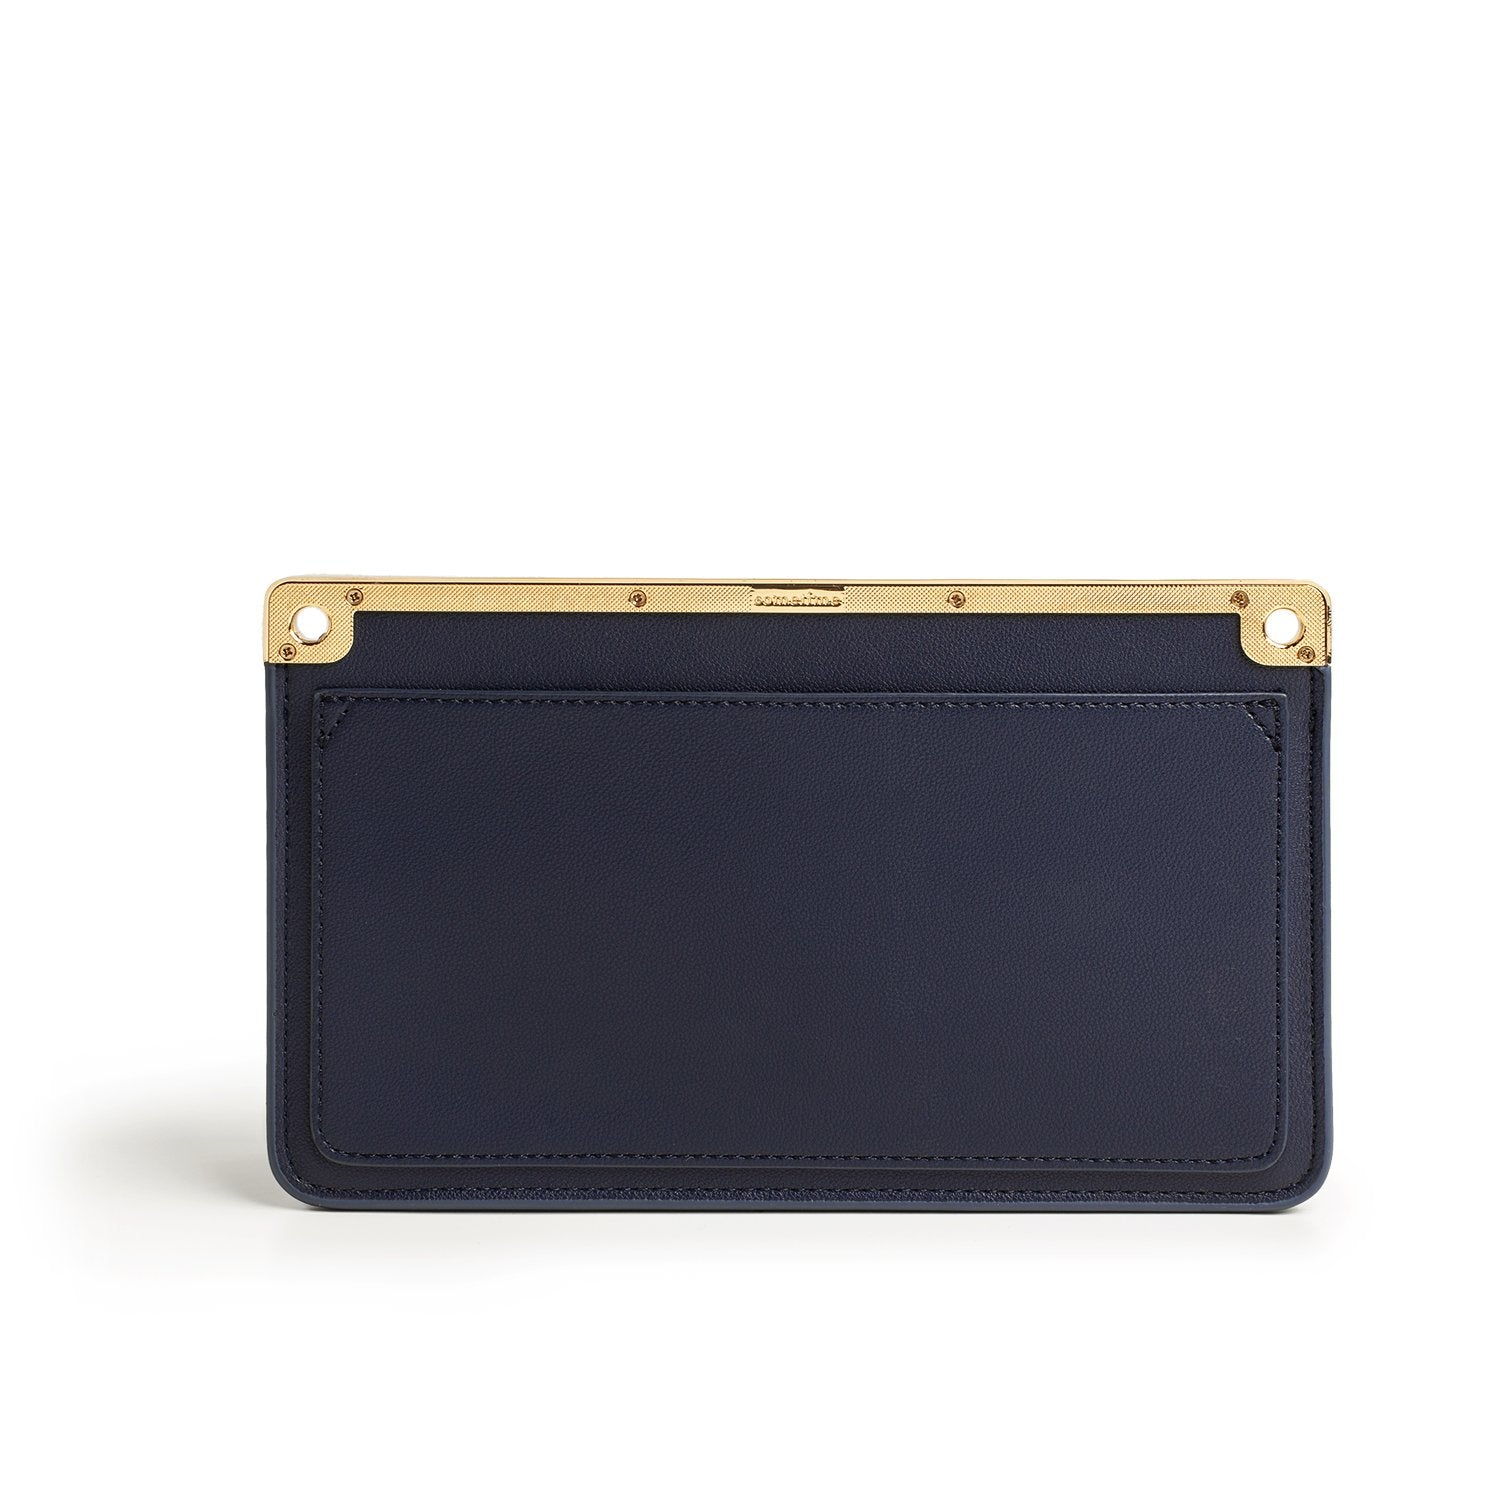 KITA CLUTCH - NAVY